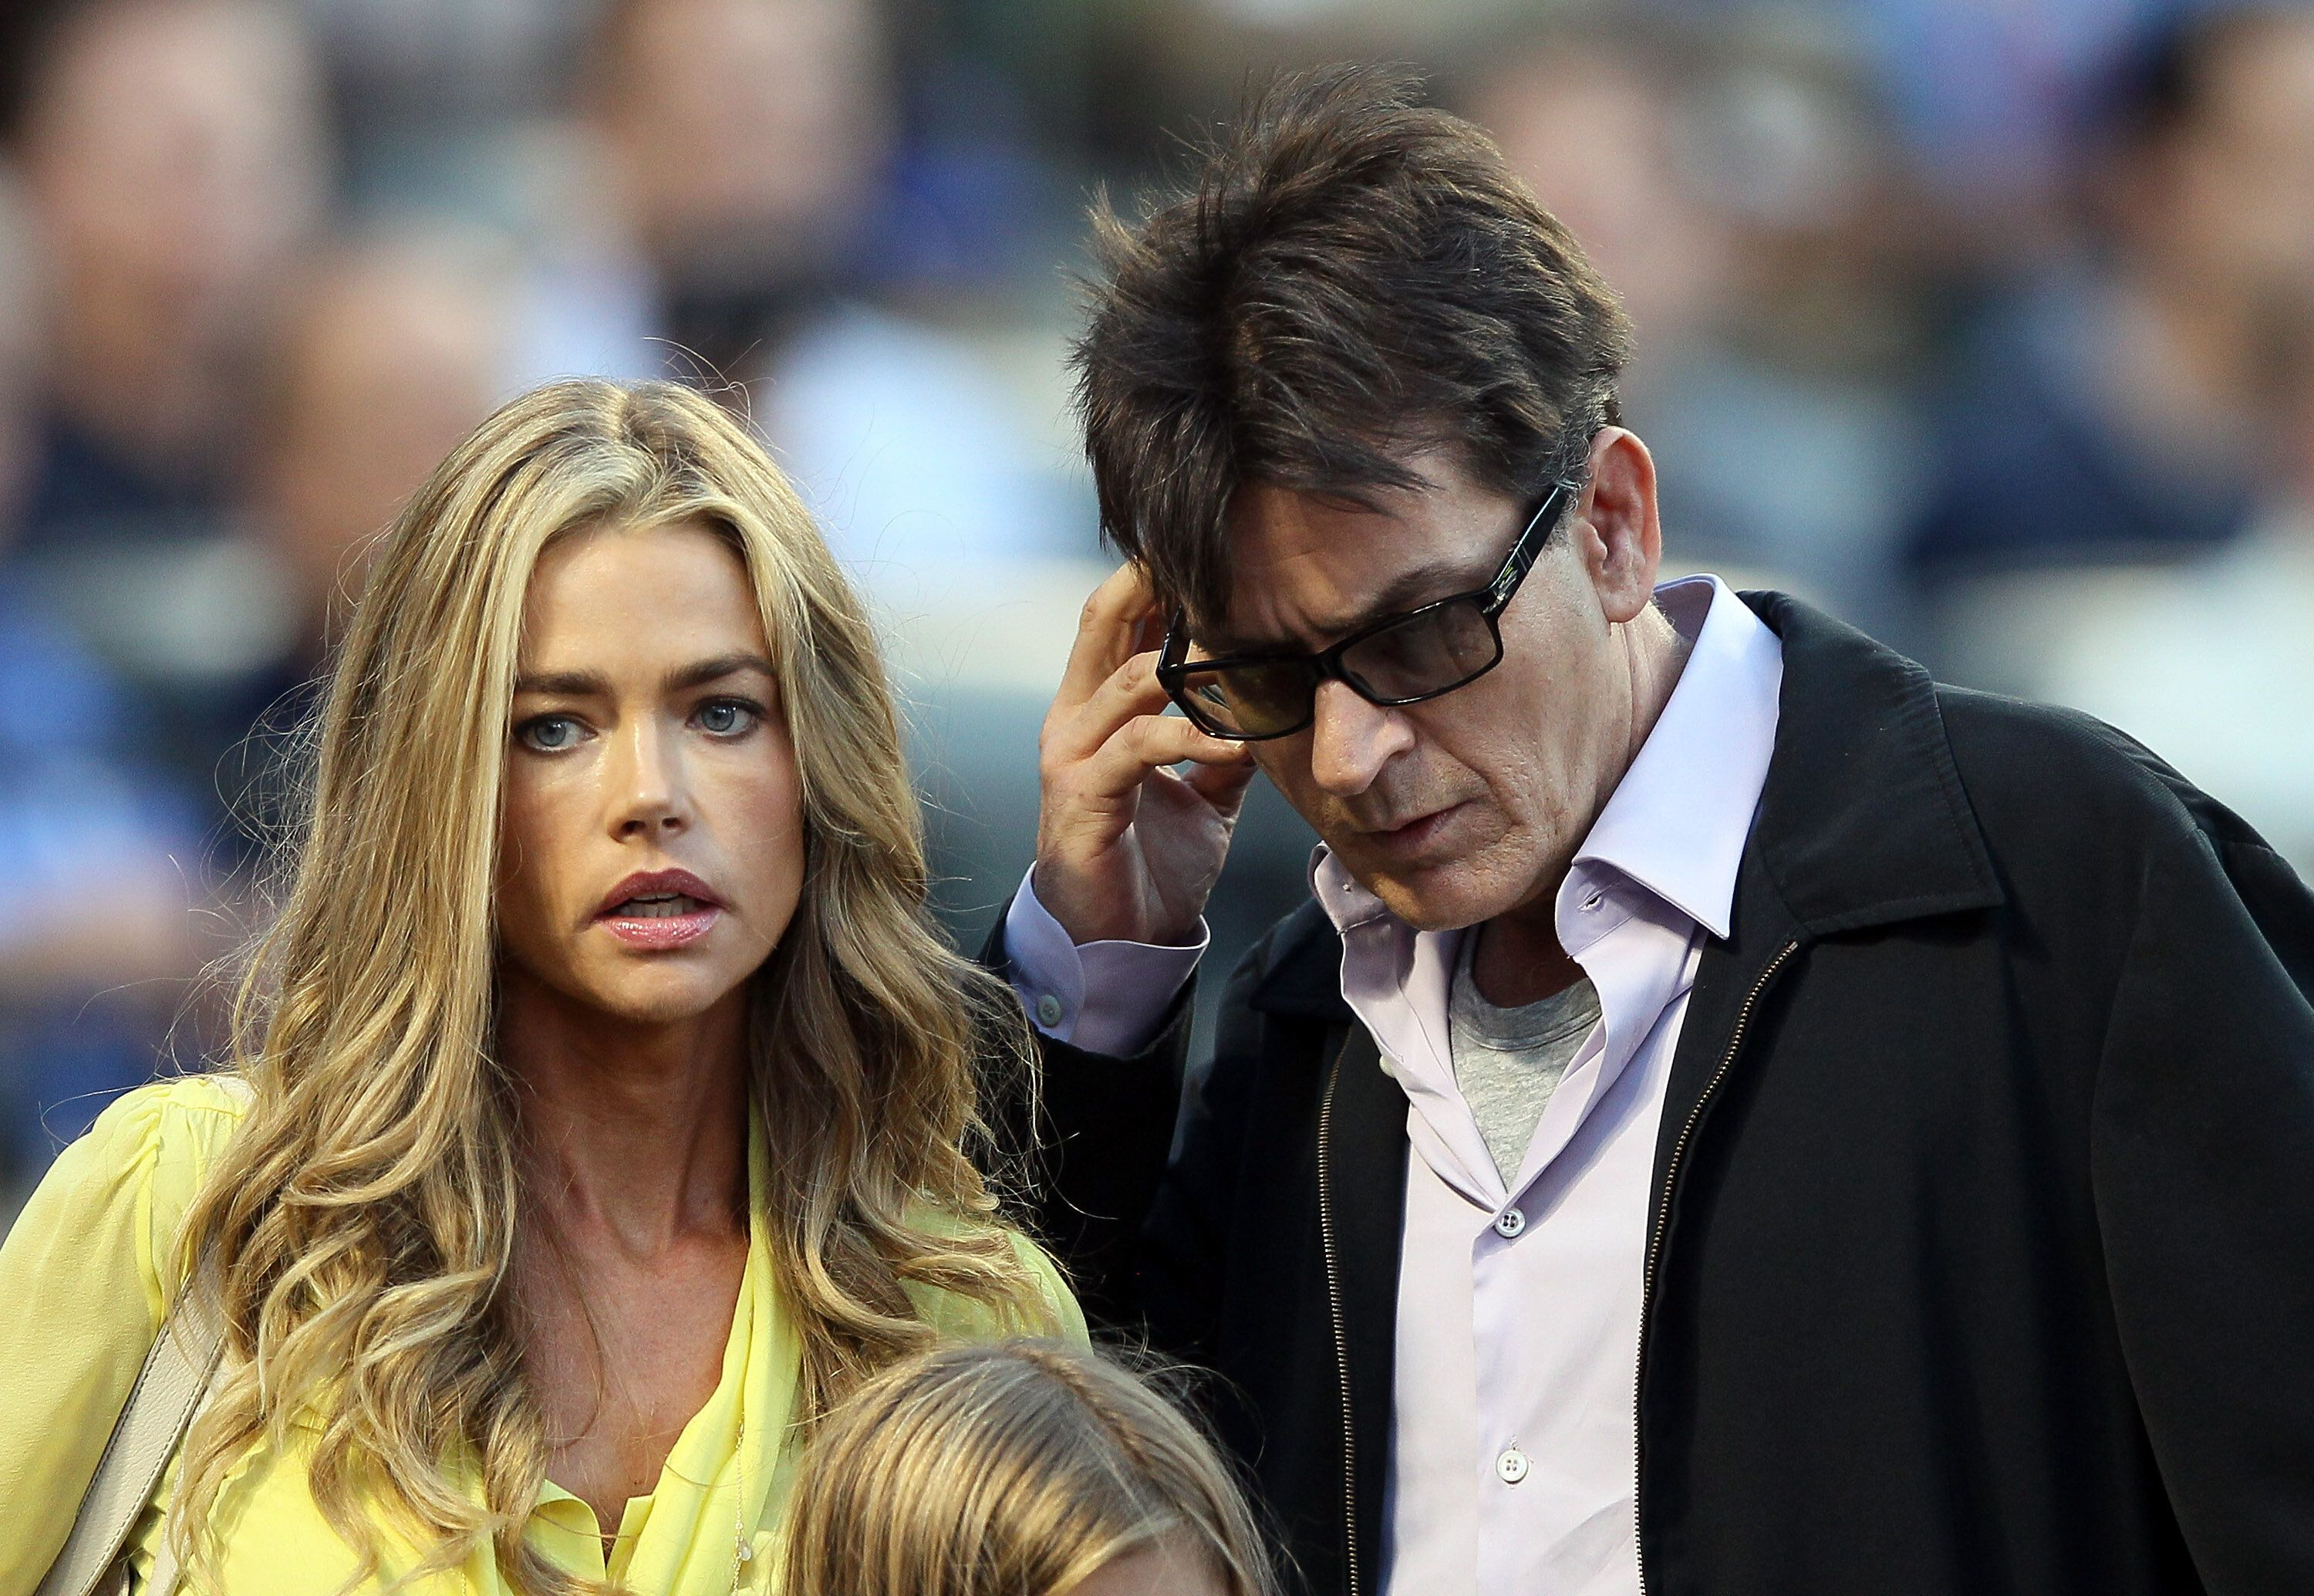 NEW YORK, NY - JUNE 23:  Denise Richards and Charlie Sheen look for their seats as the New York Yankees take on the New York Mets on June 23, 2012 during interleague play at Citi Field in the Flushing neighborhood of the Queens borough of New York City.  (Photo by Elsa/Getty Images)